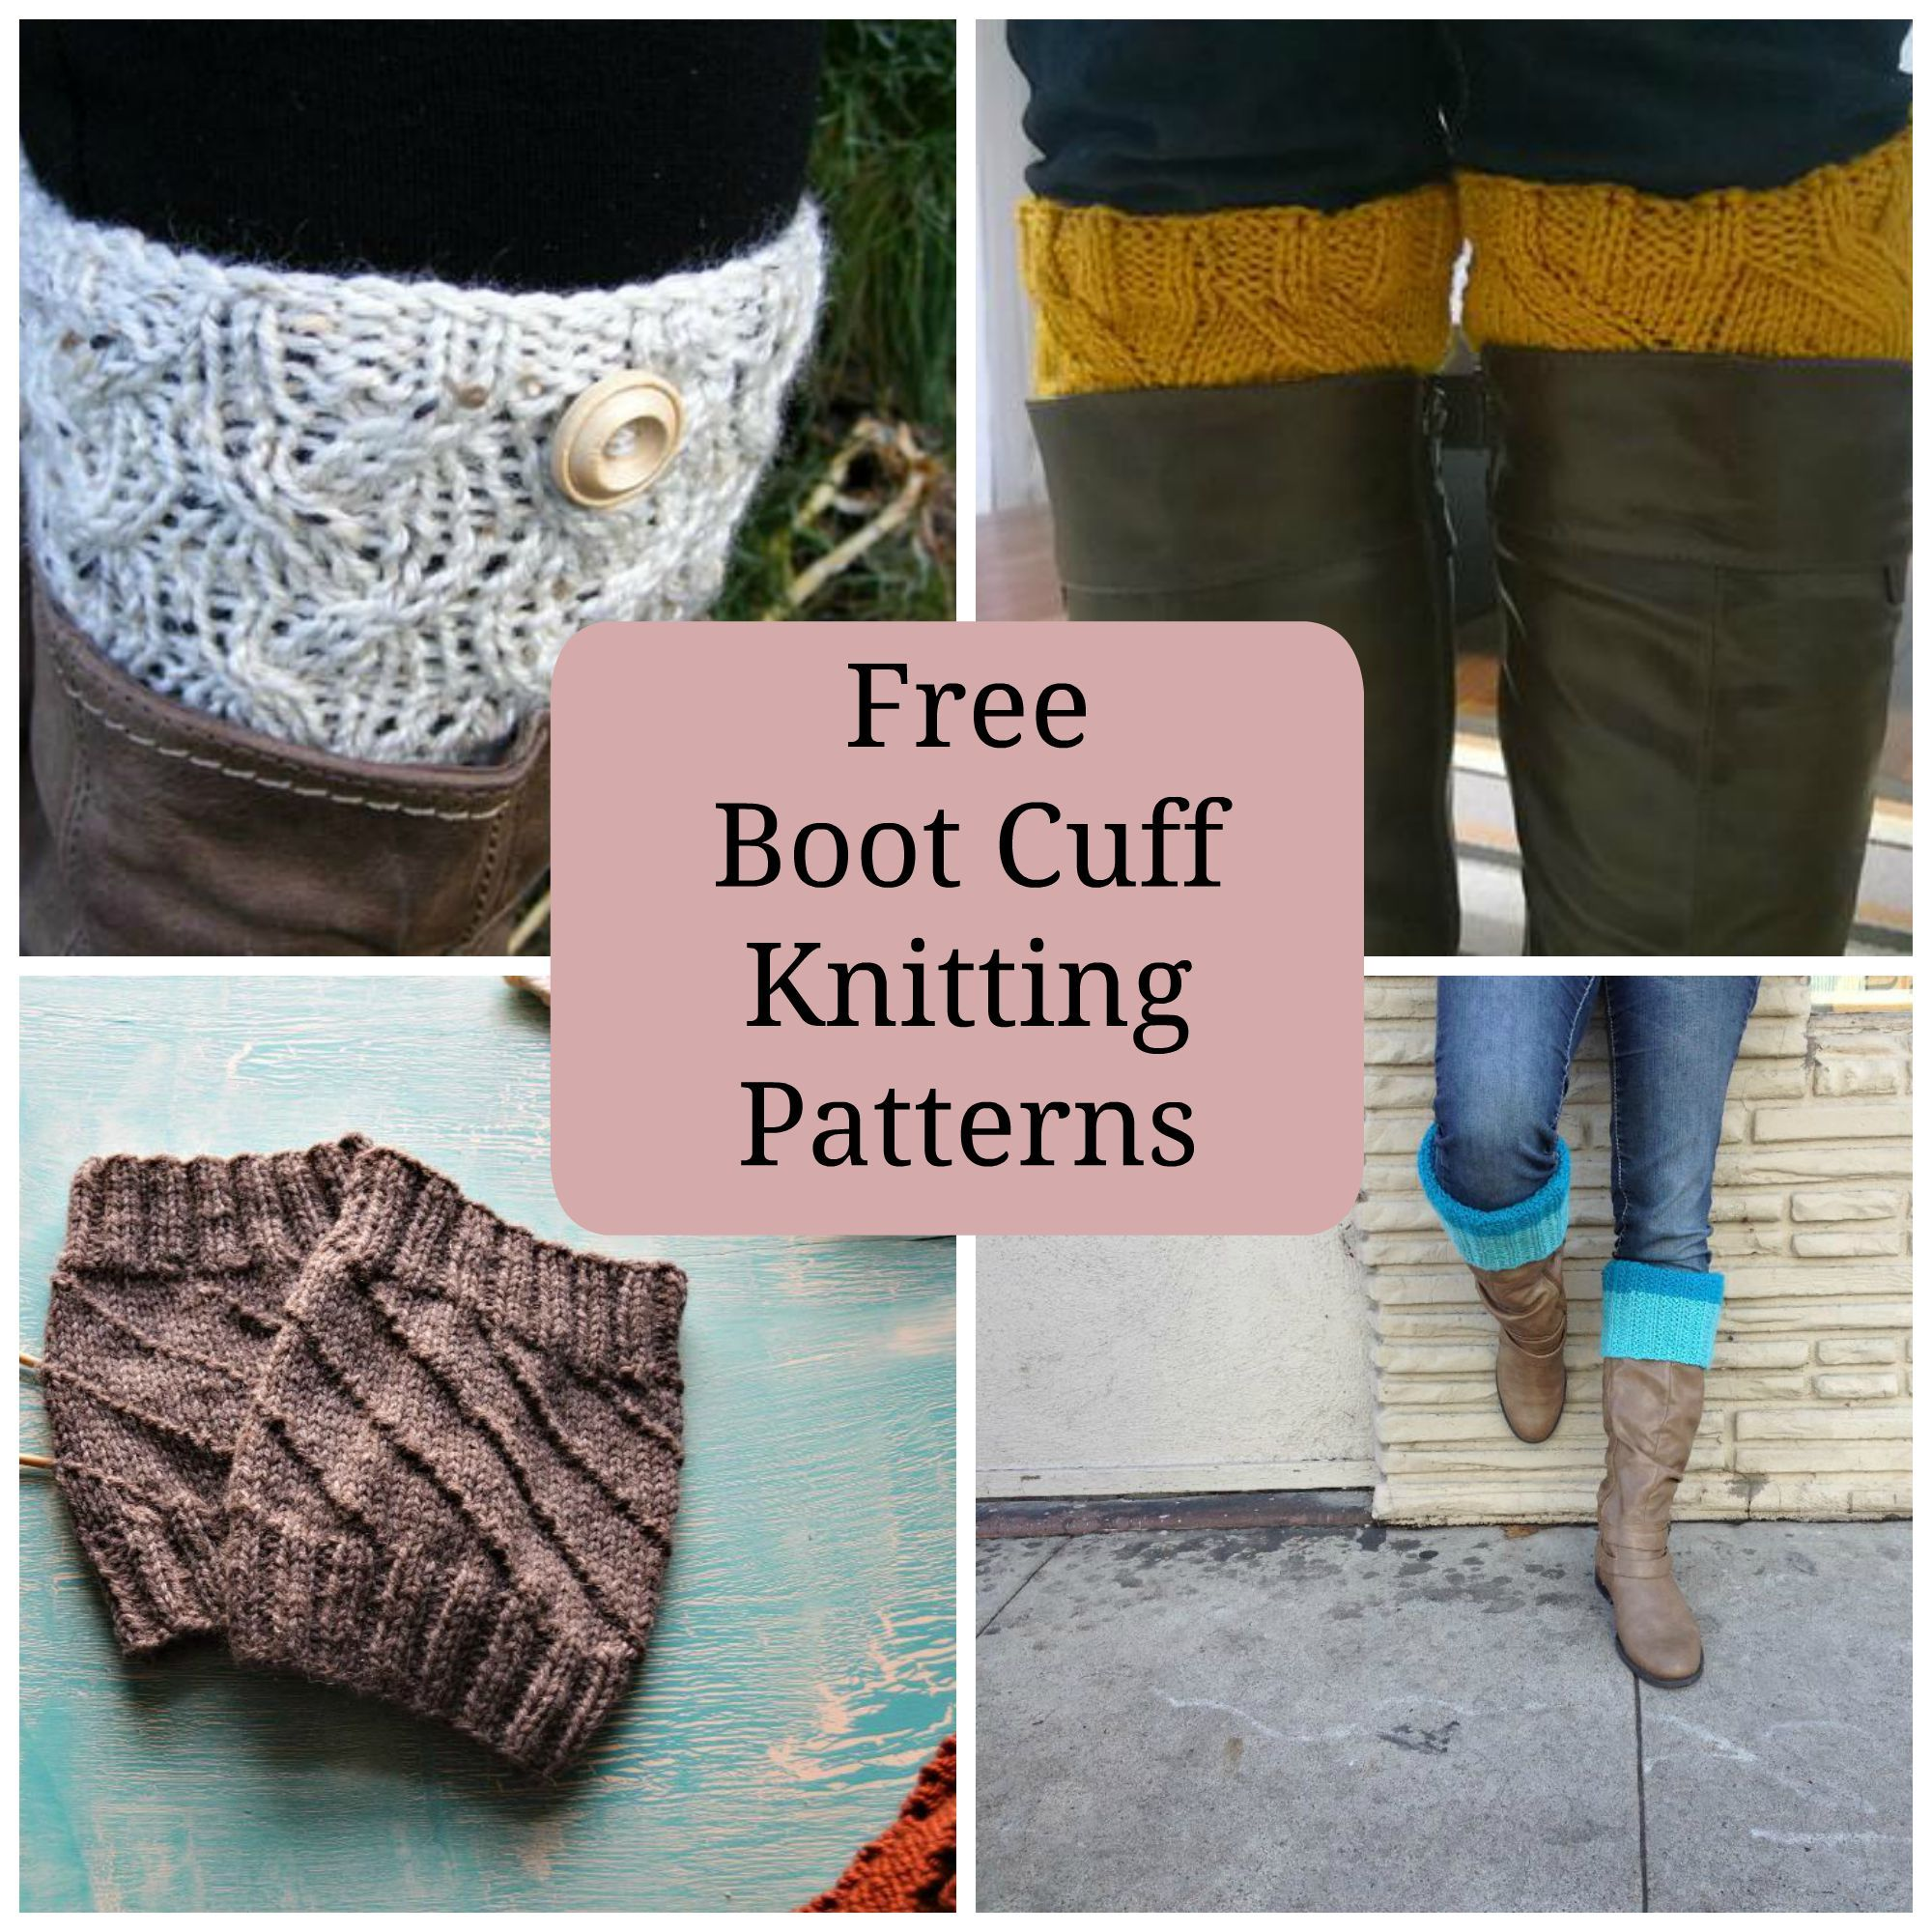 8 Quick & Free Knitted Boot Cuffs | Knit patterns, Patterns and Winter